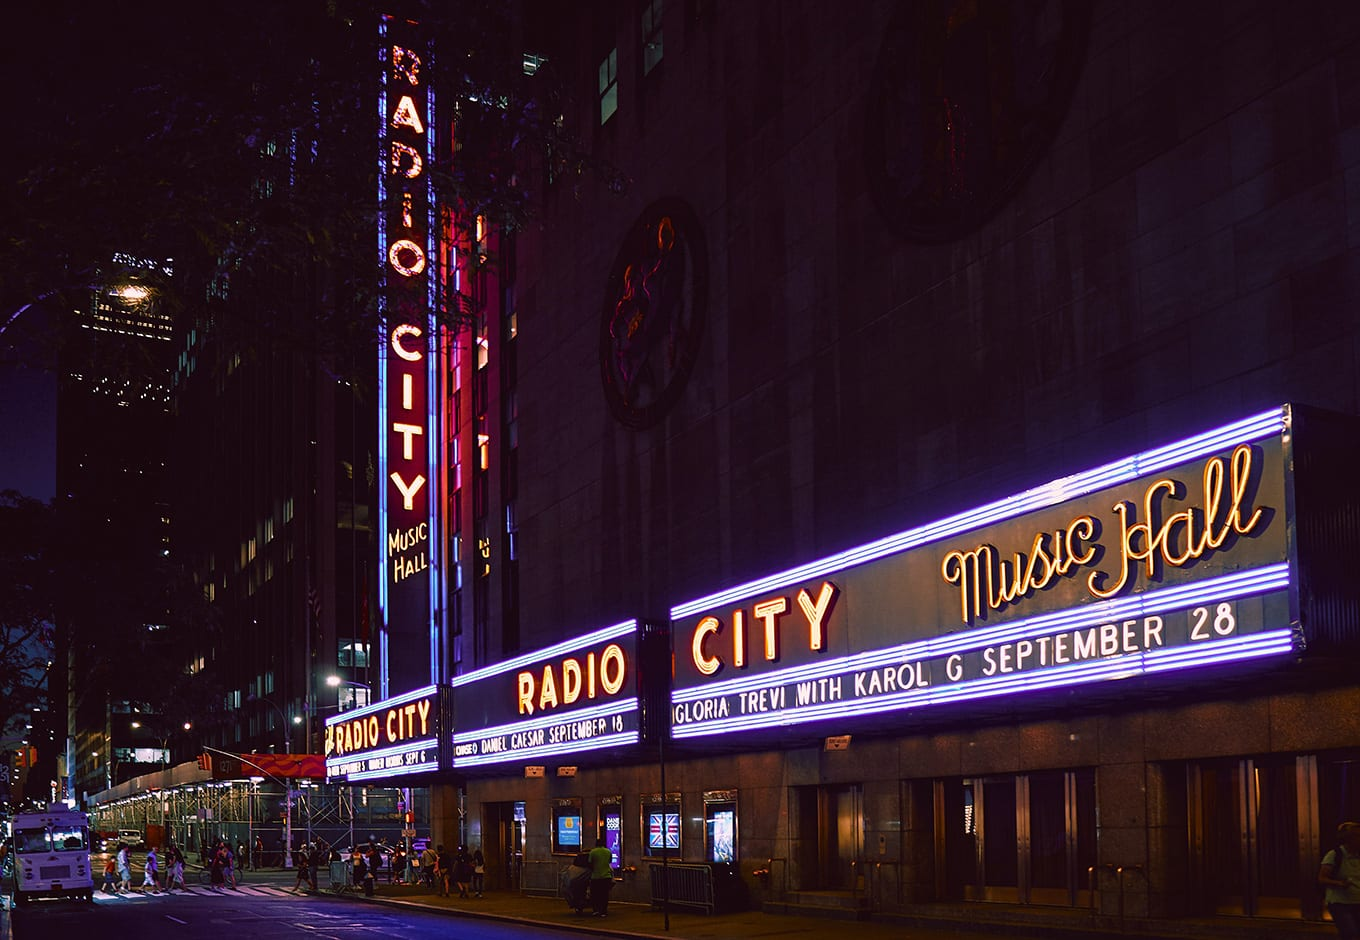 Radio City Music Hall with light display in Dec in NY